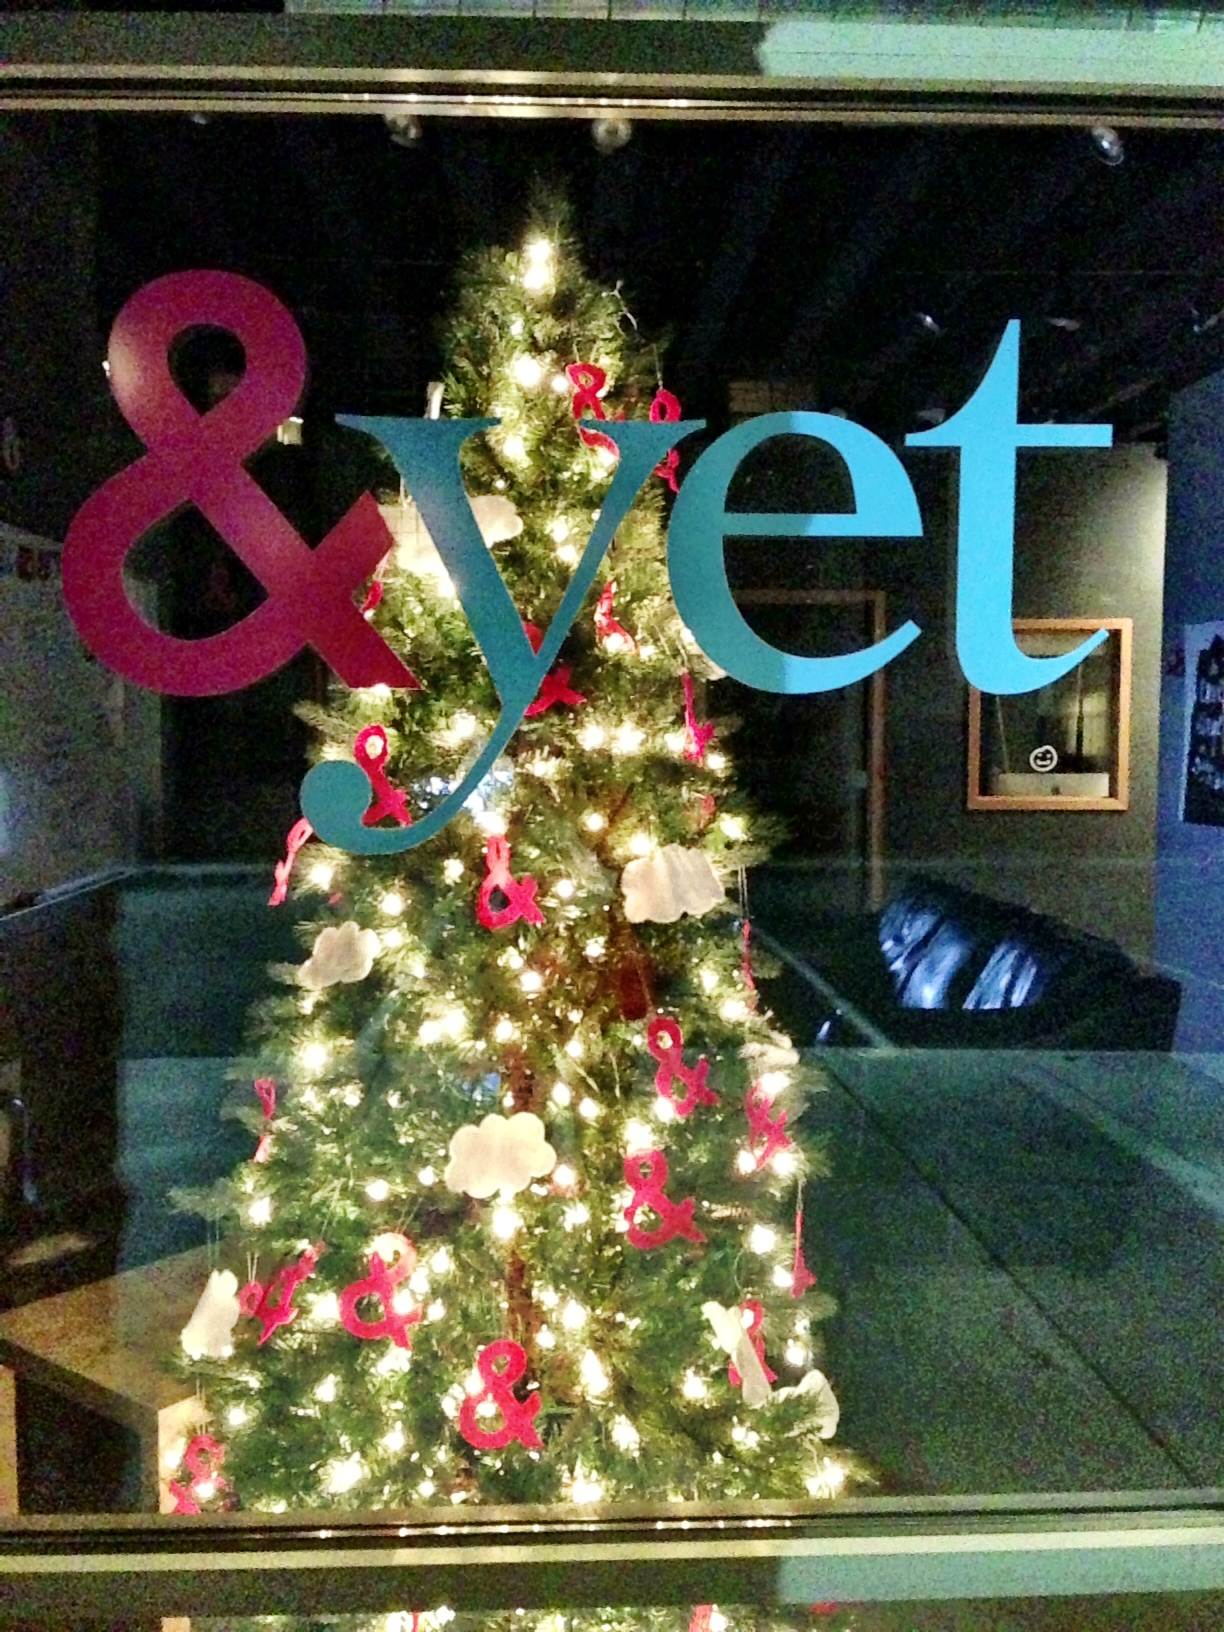 a christmas tree decorated with ampersands behind the &yet logo